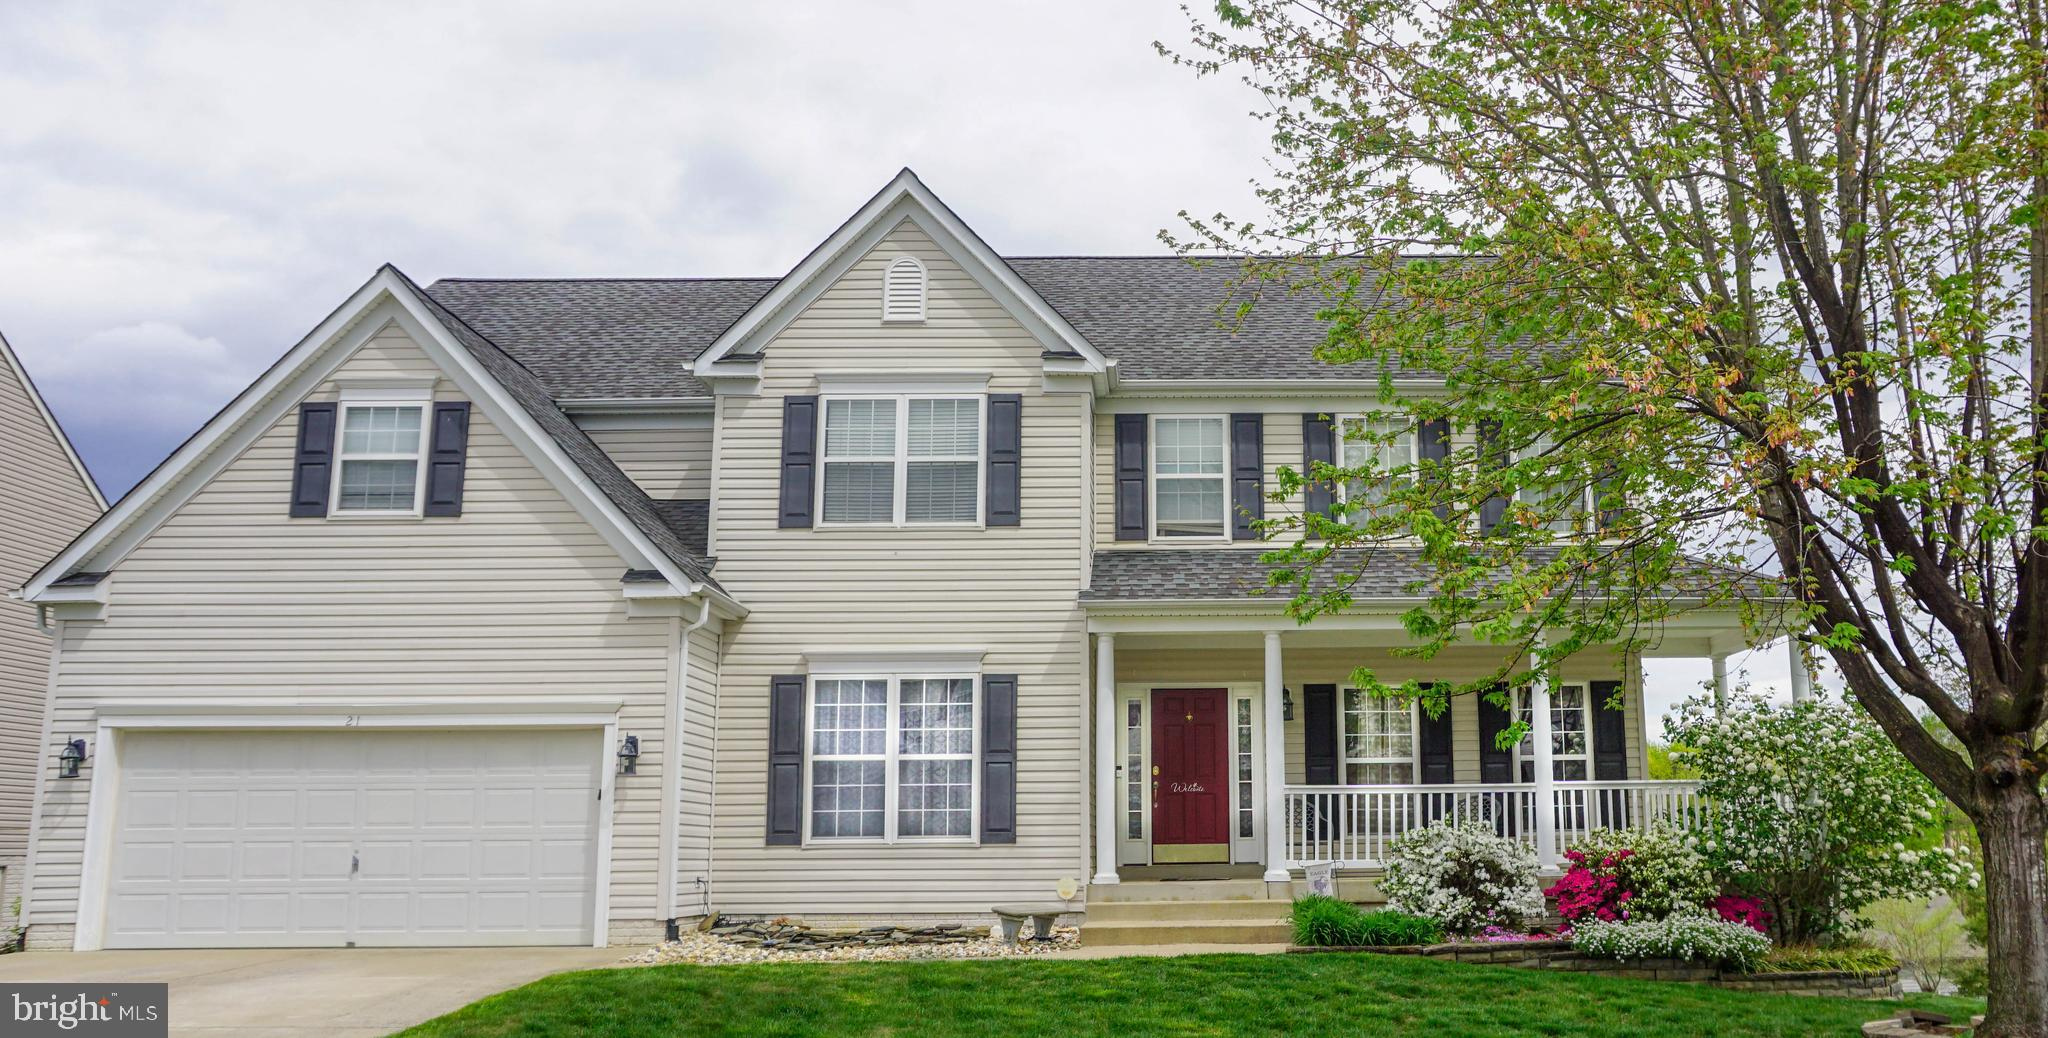 **OPEN HOUSE SATURDAY MAY 15th, 1-3PM!** Don't miss your opportunity to own this large, 6 bedroom, f